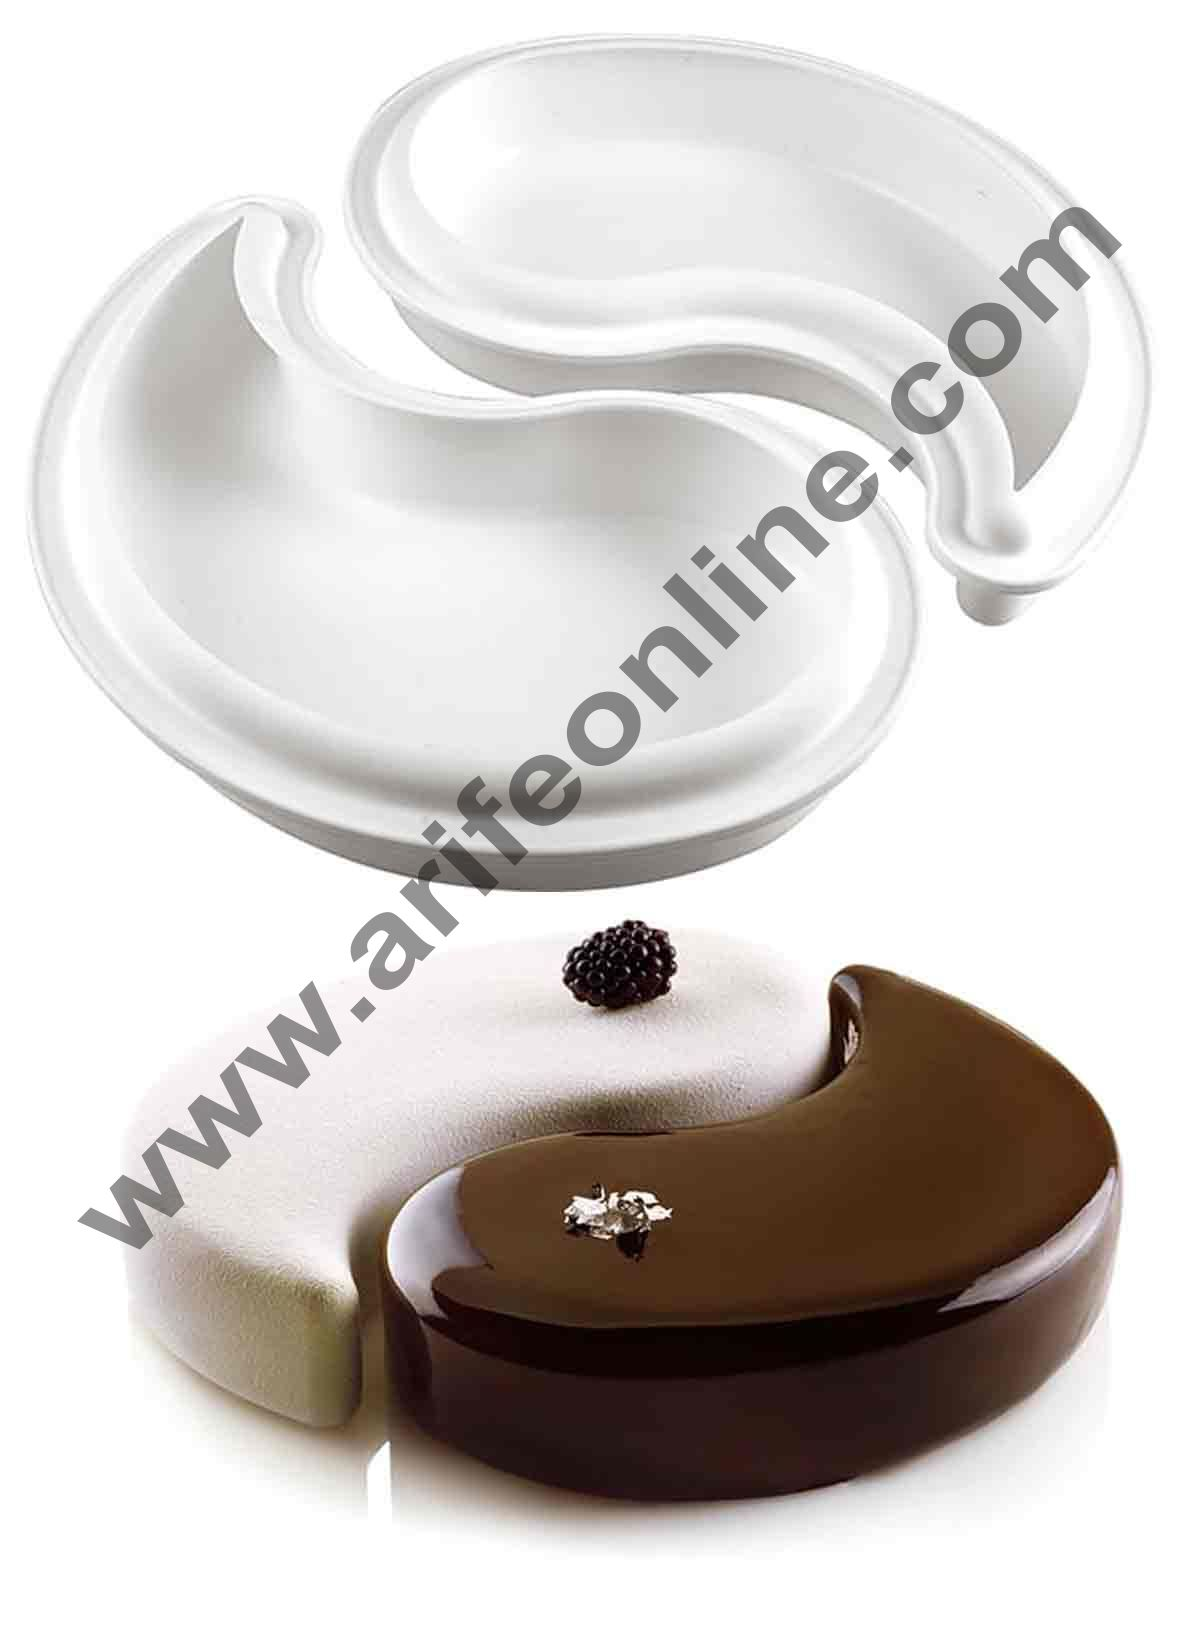 Cake Decor Silicon Yin Yang Design Cake Mould Mousse Cake Mould Silicon Moulds